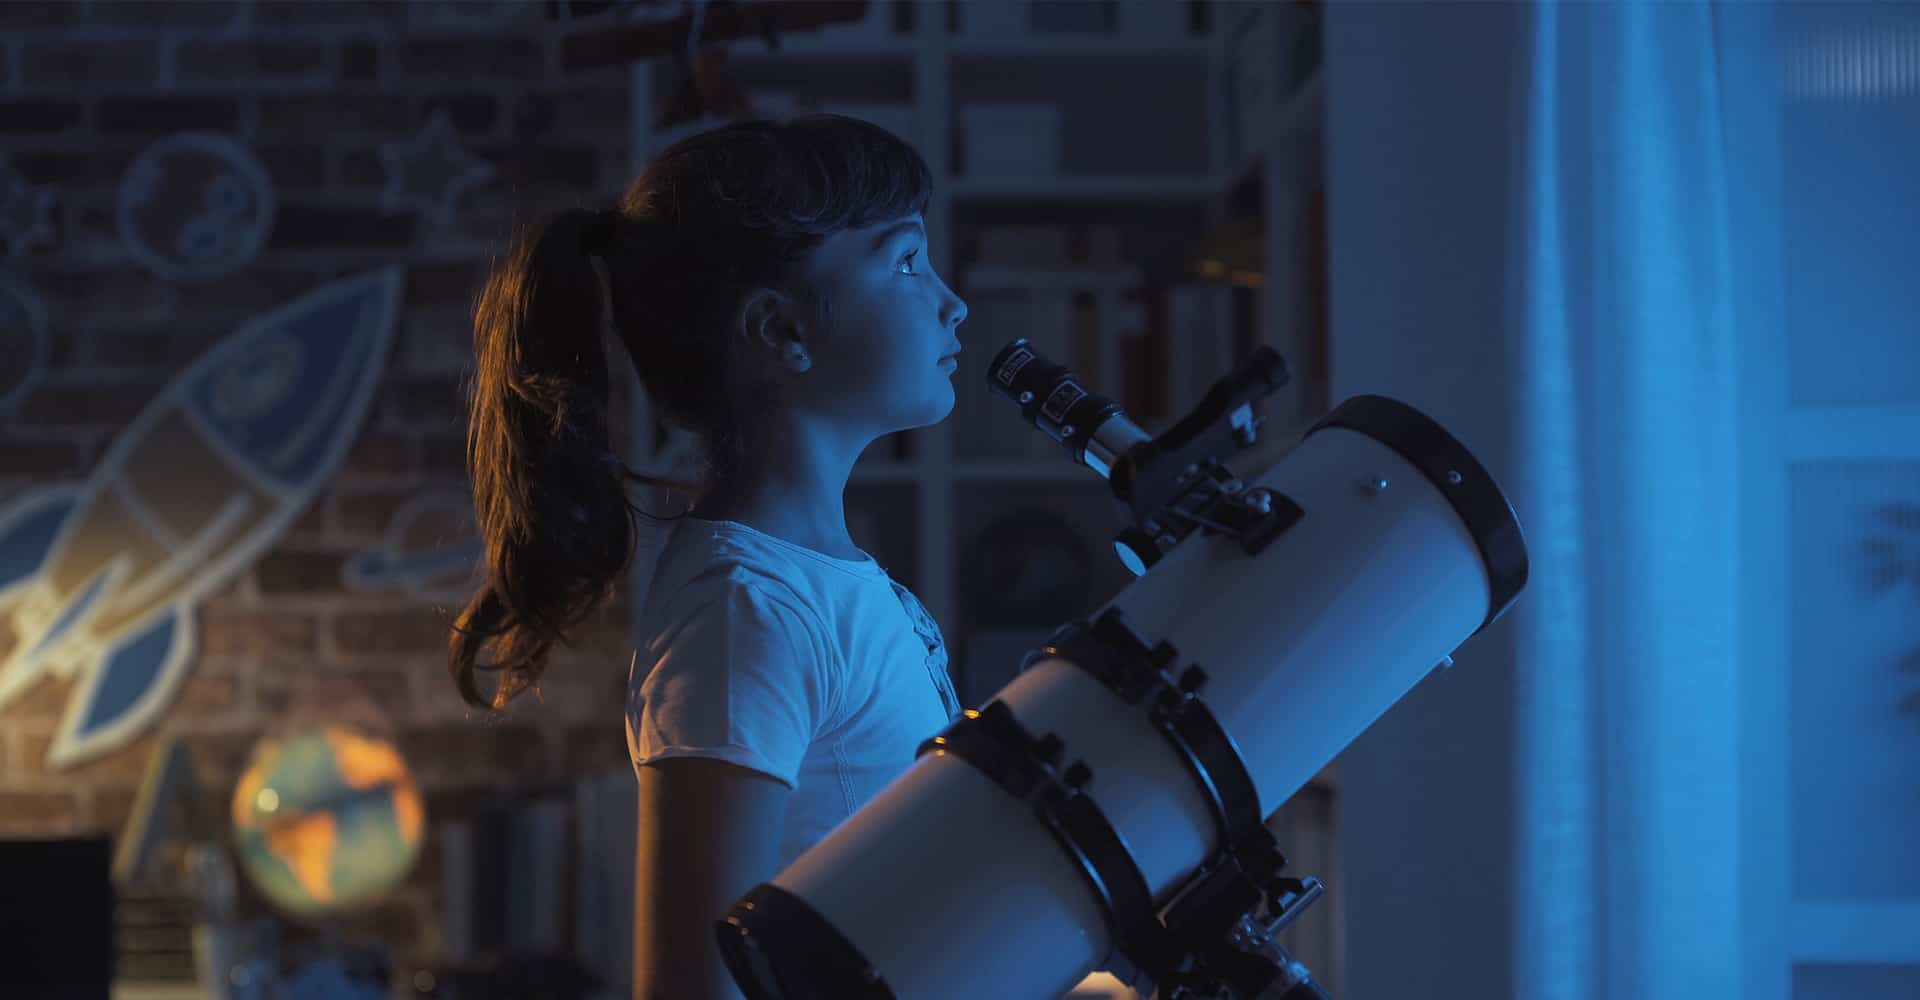 5 Best Telescopes for Kids Reviewed [2019] | Hobby Help